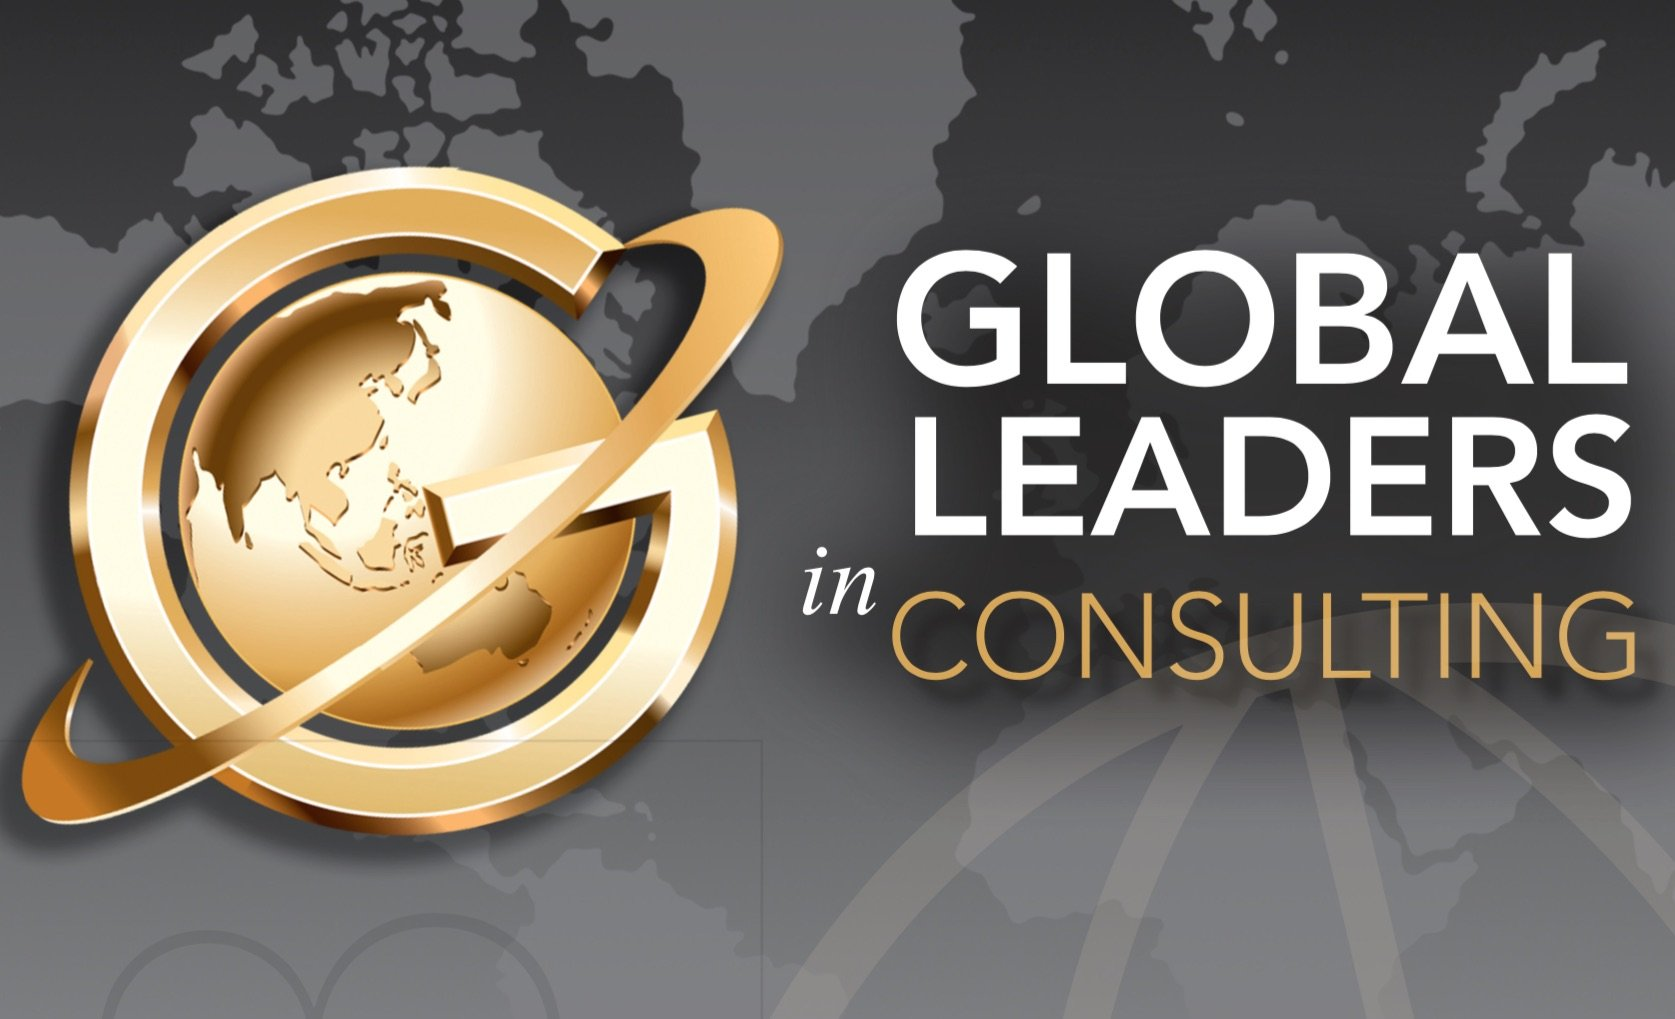 The Global Leaders in Consulting